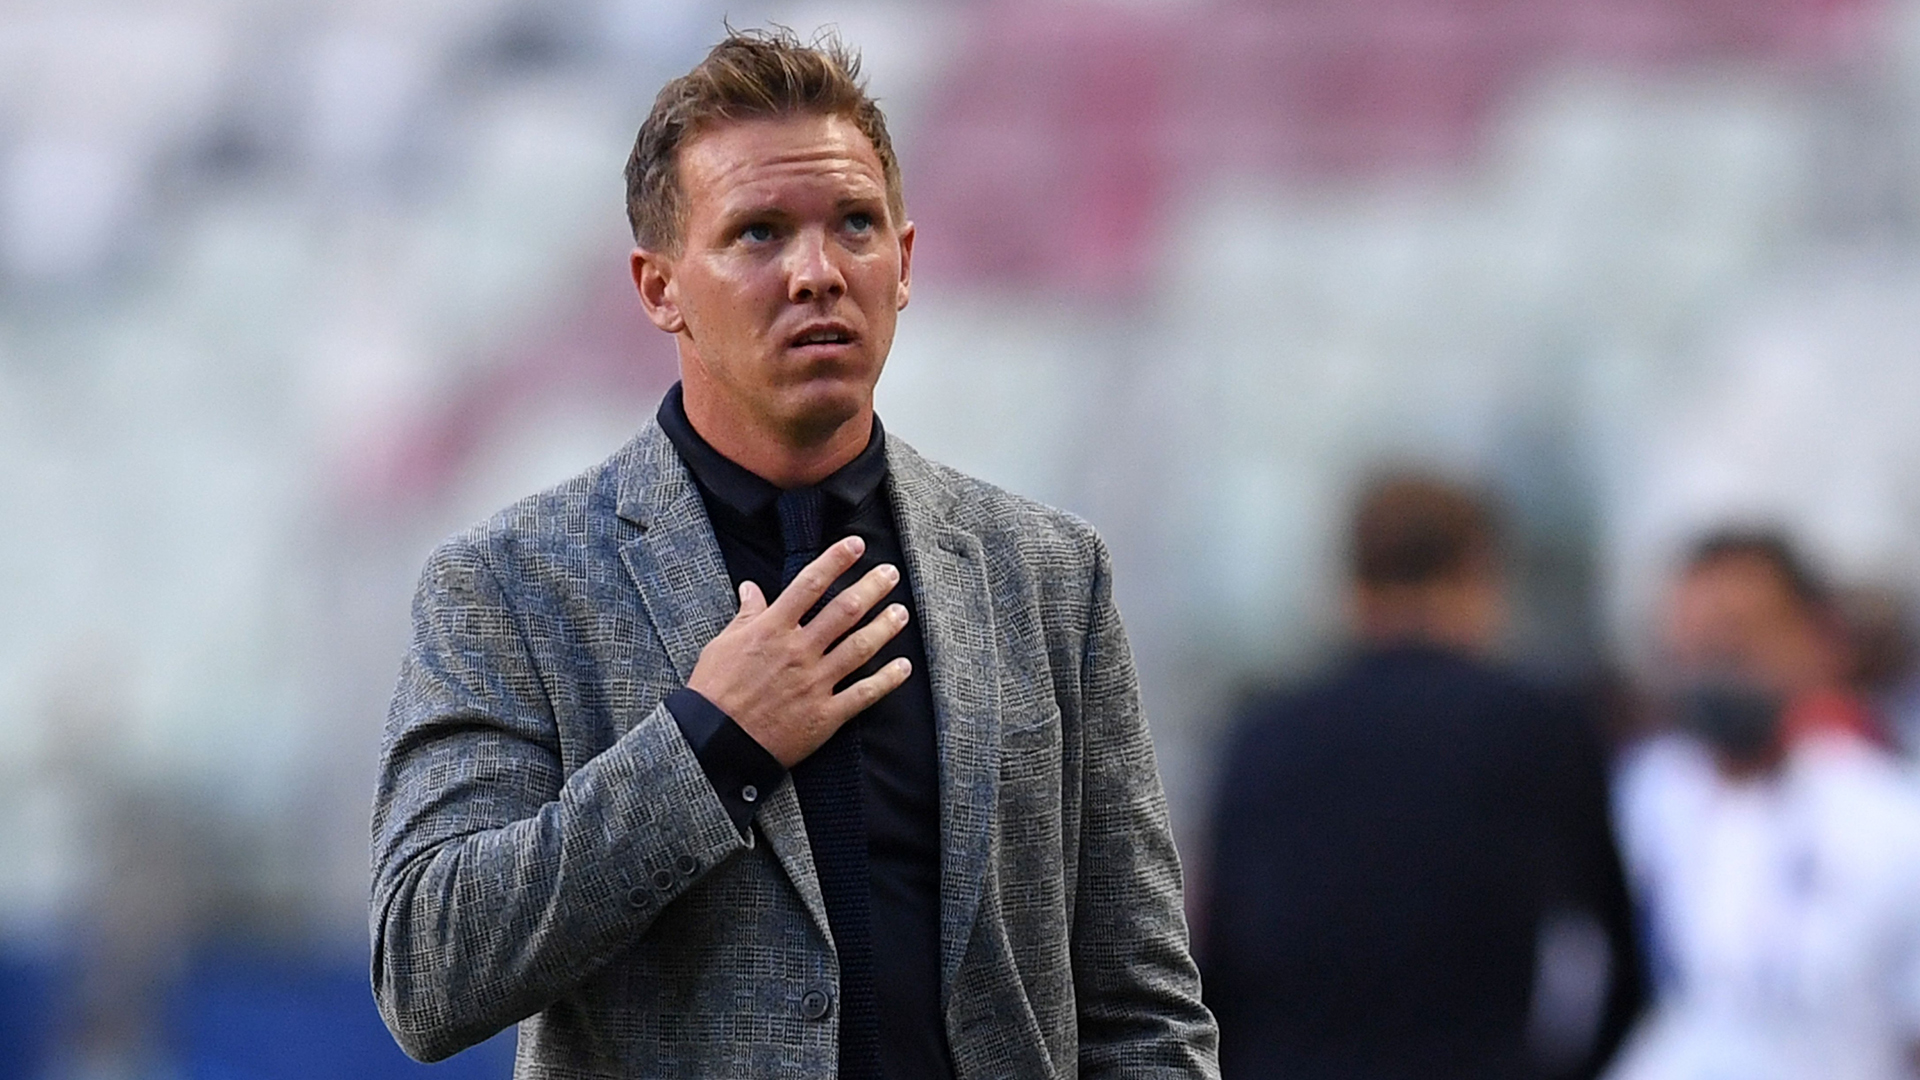 Julian Nagelsmann and the young manager's learning curve